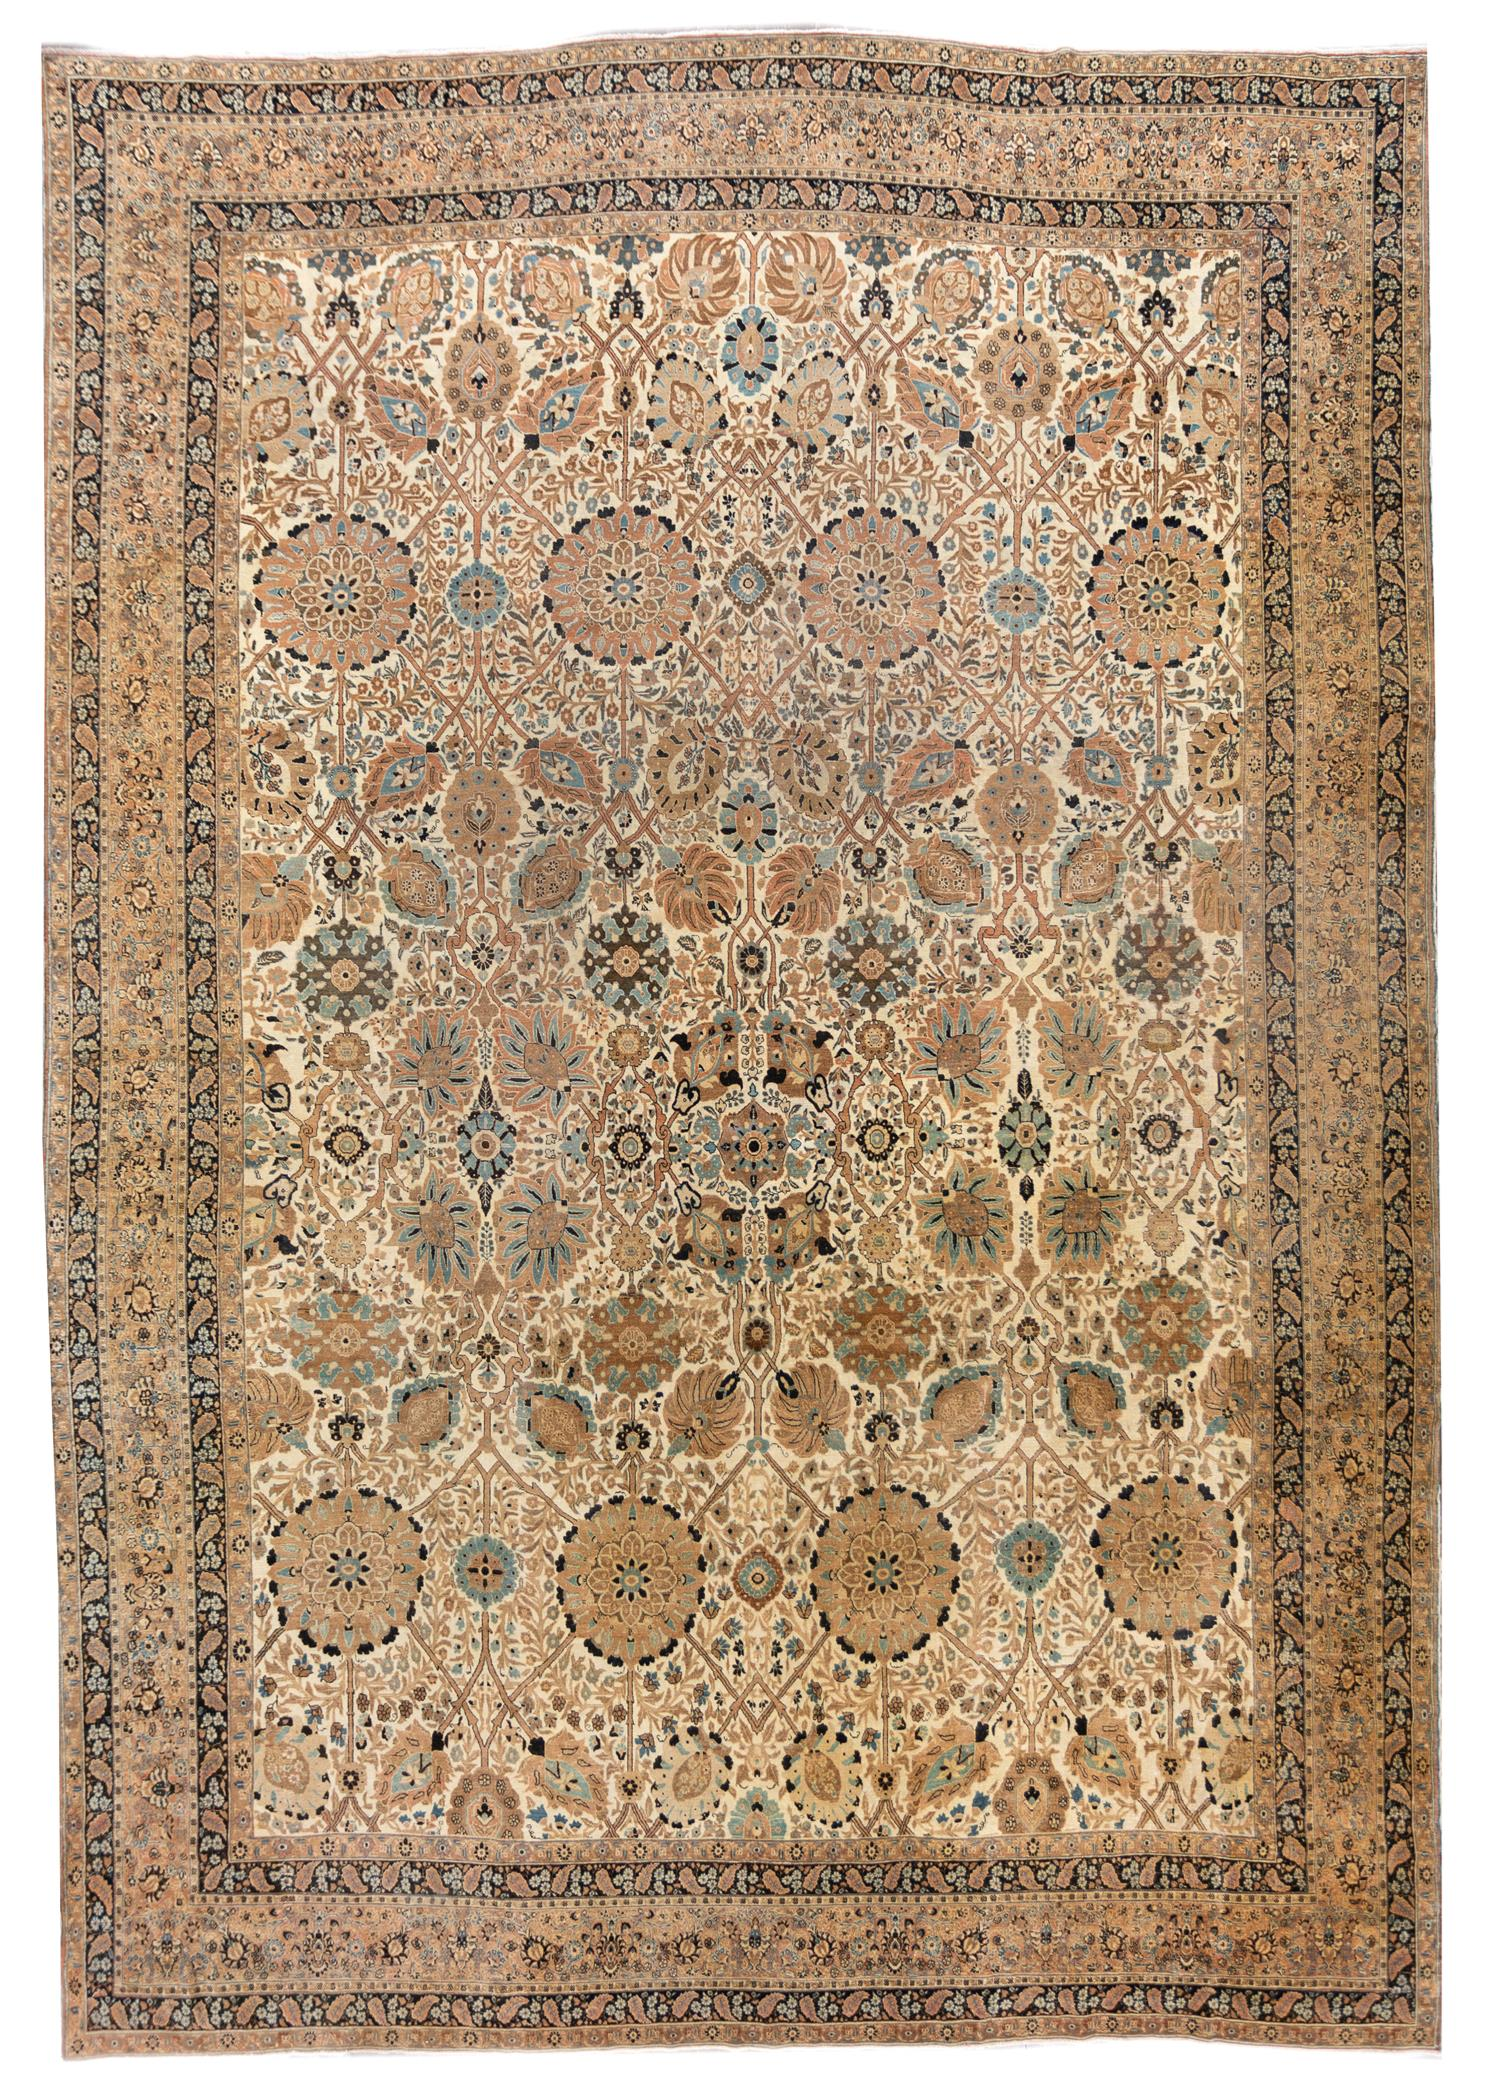 19th Century Antique Tabriz Rug, 13X18